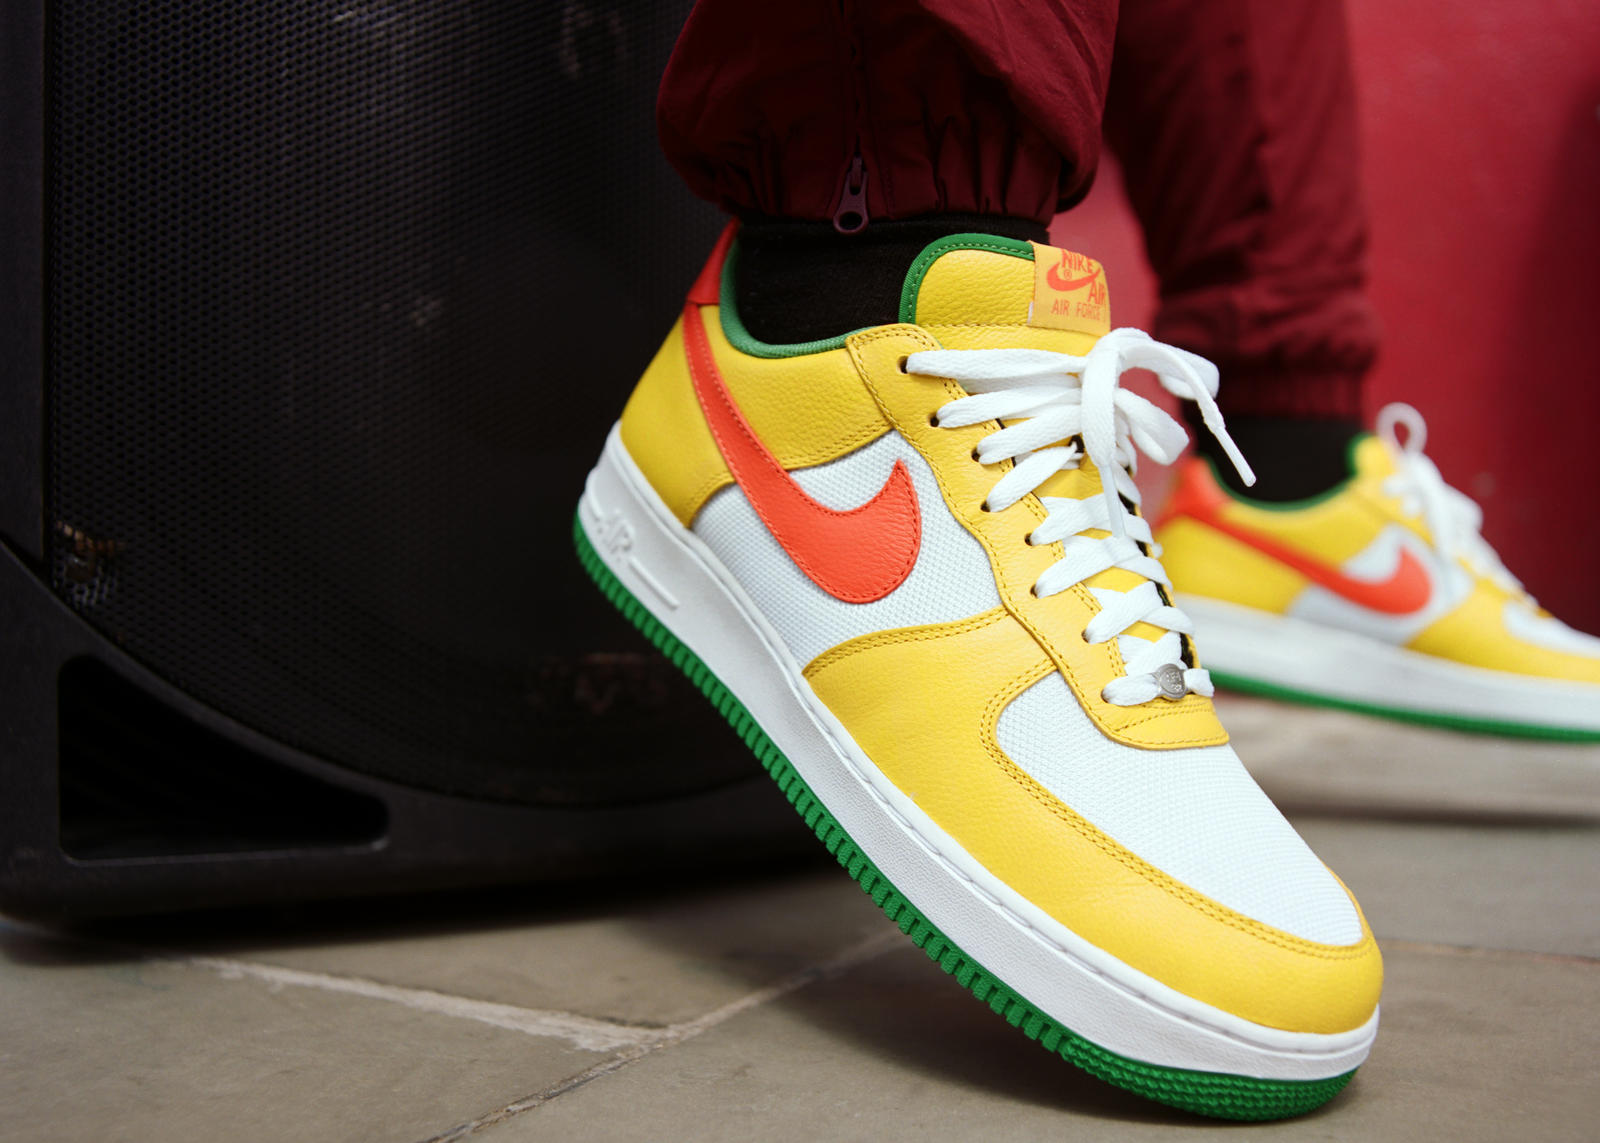 Nike's Air Force 1 Carnival from 2003